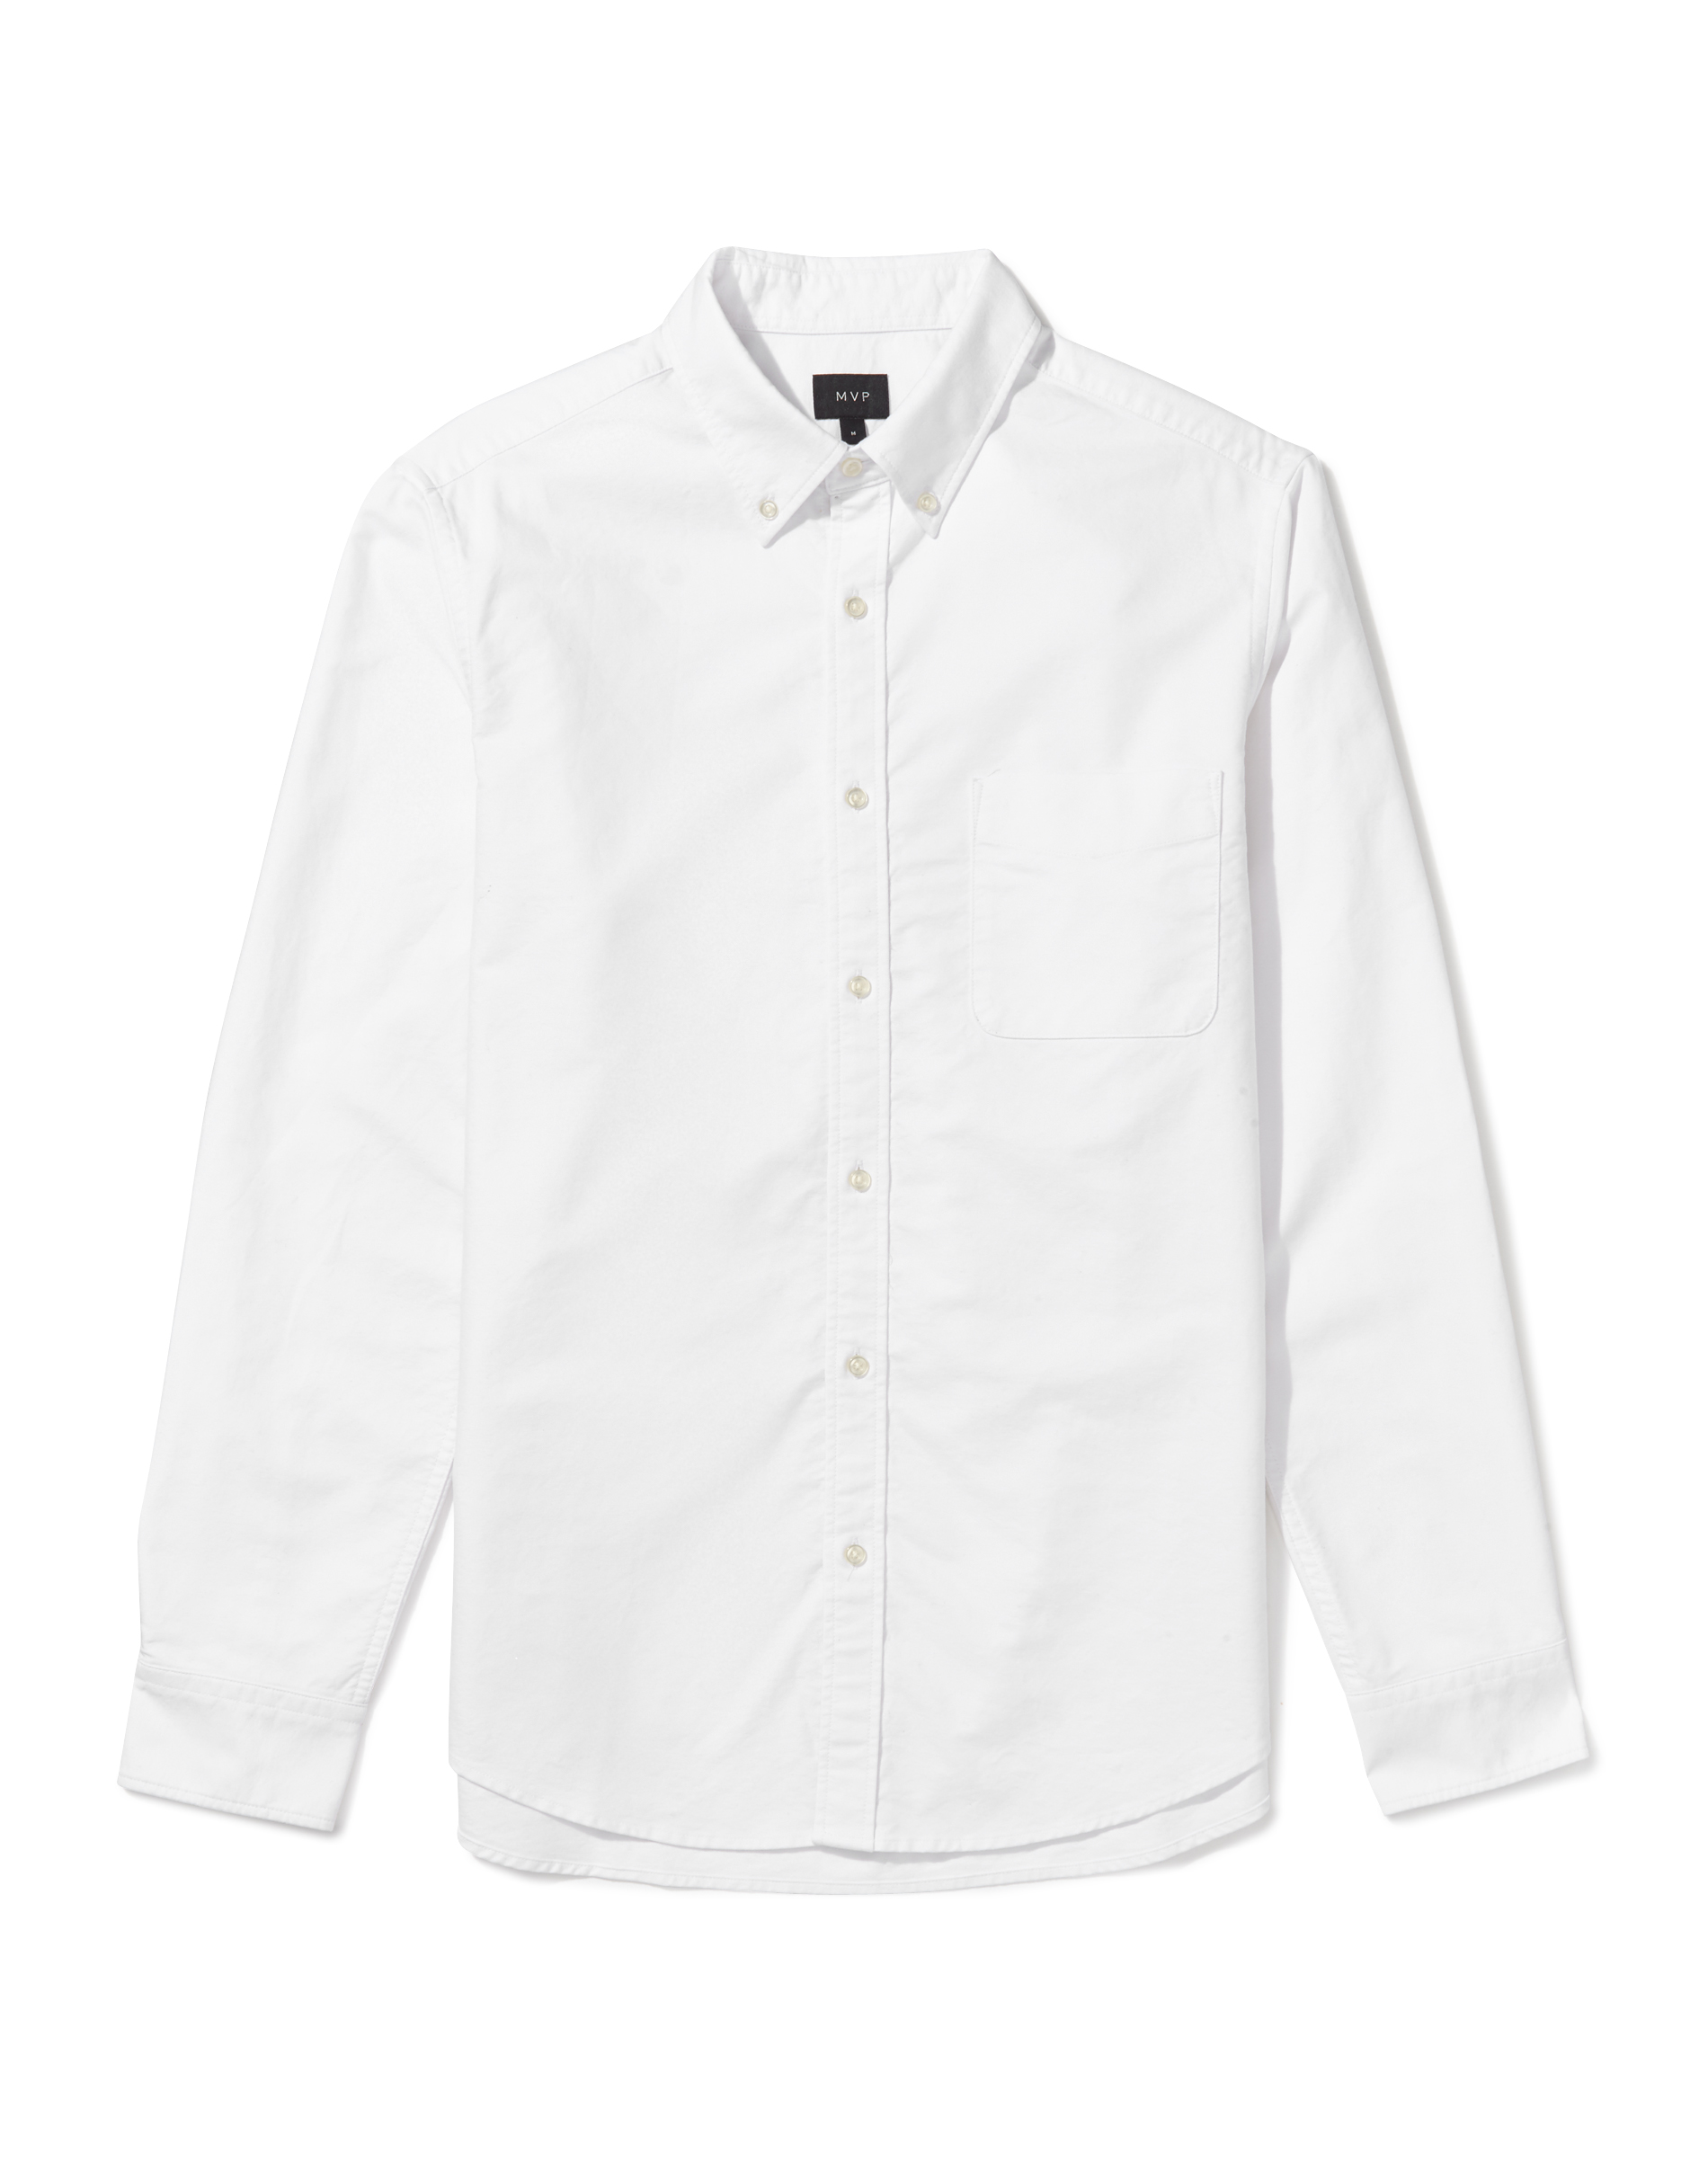 Chapman Oxford Shirt - White by MVP — Thread